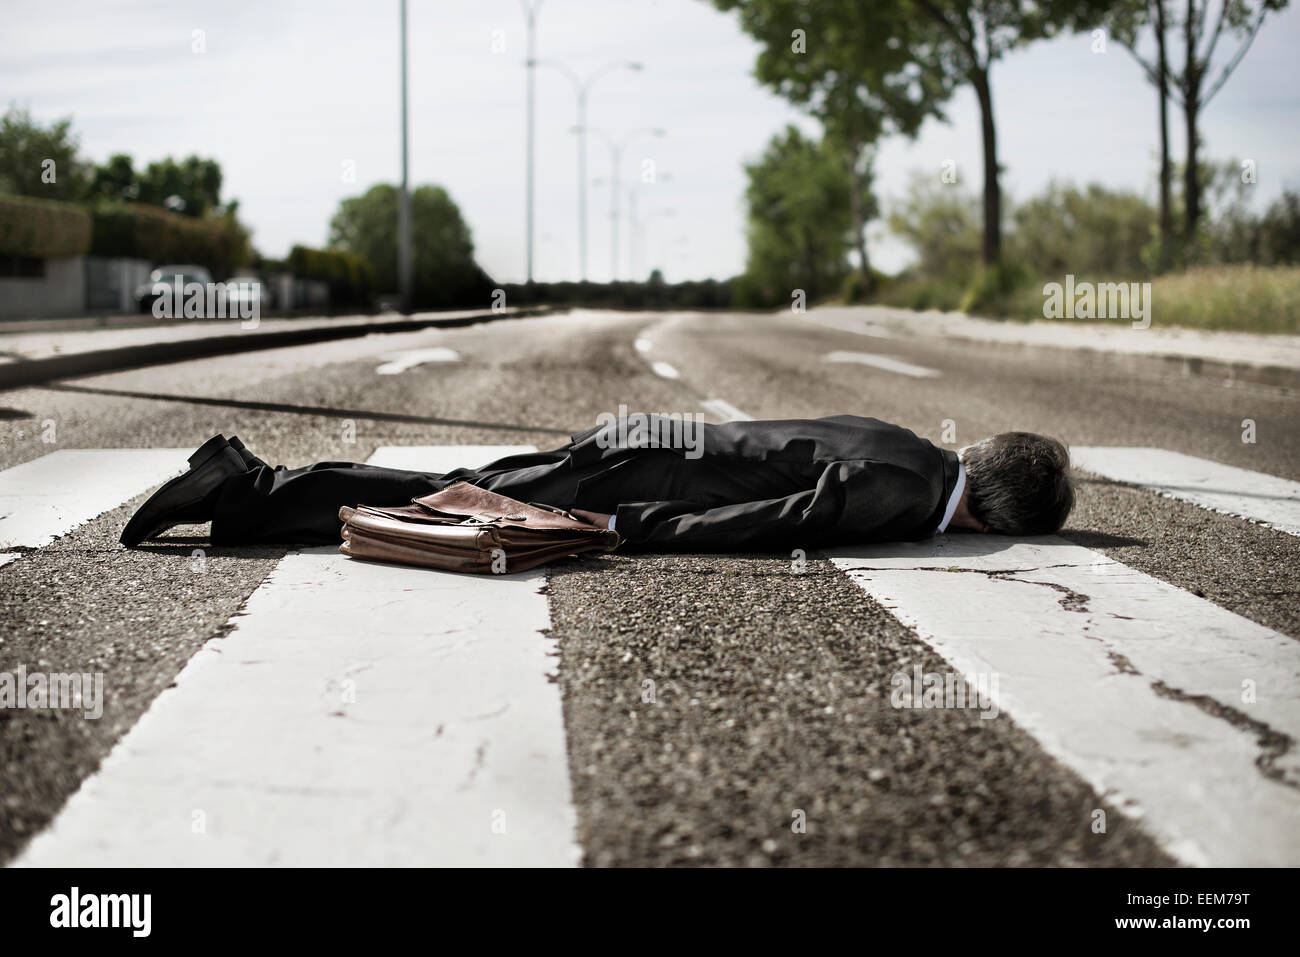 Businessman lying on zebra crossing. - Stock Image